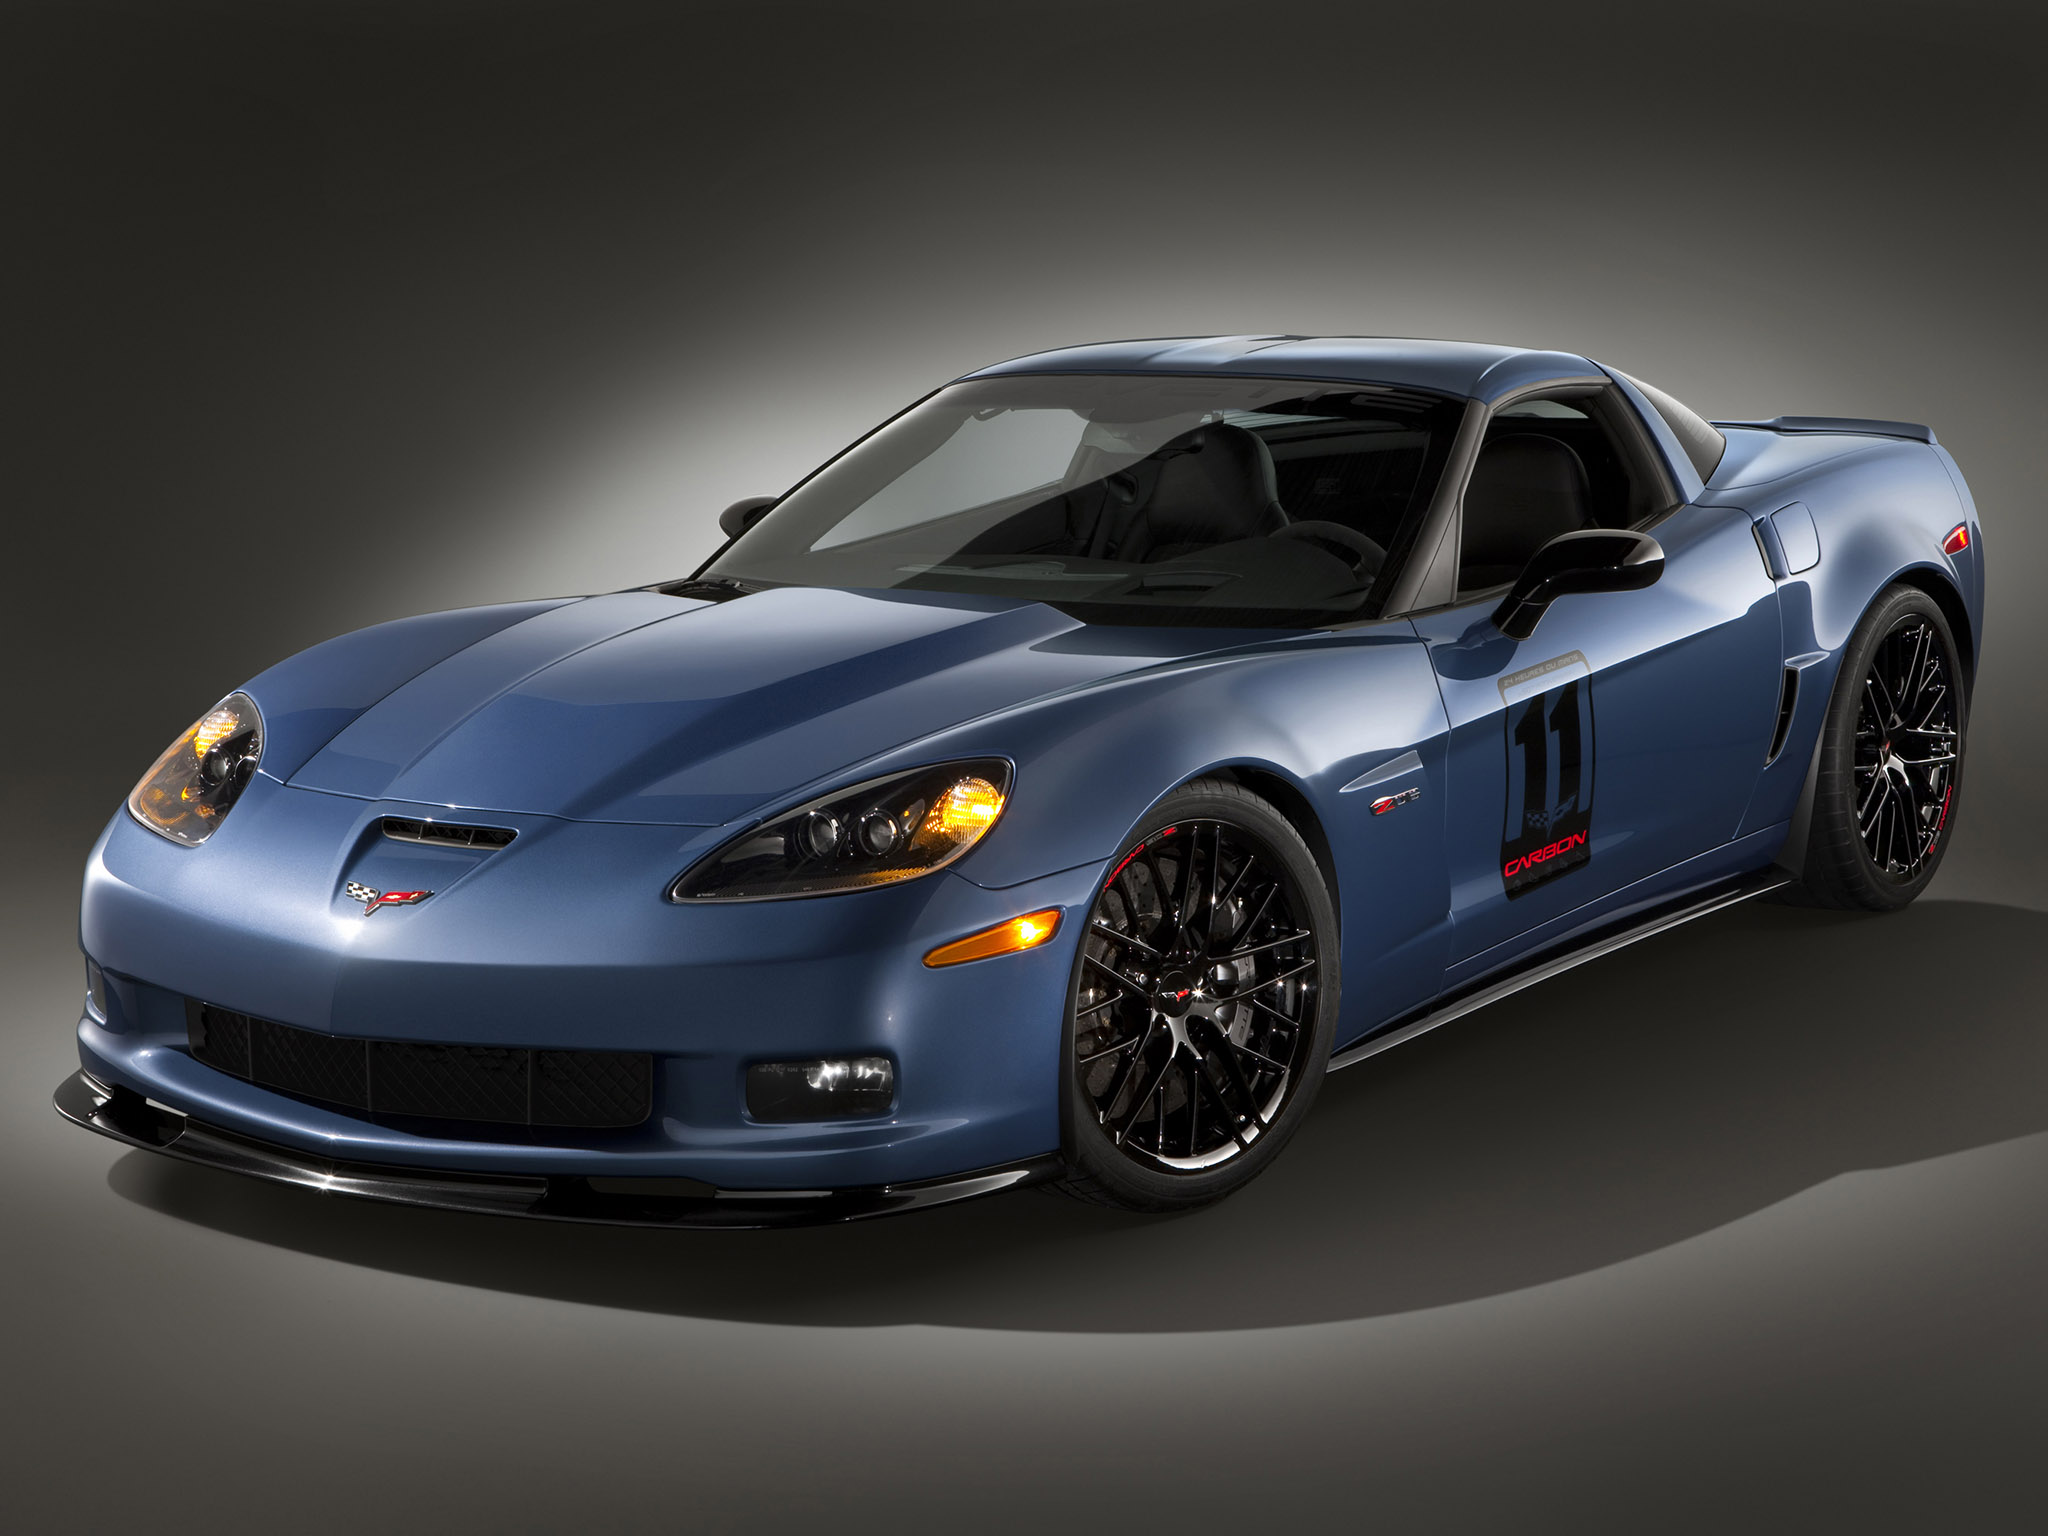 Chevrolet corvette 2010 photo - 3